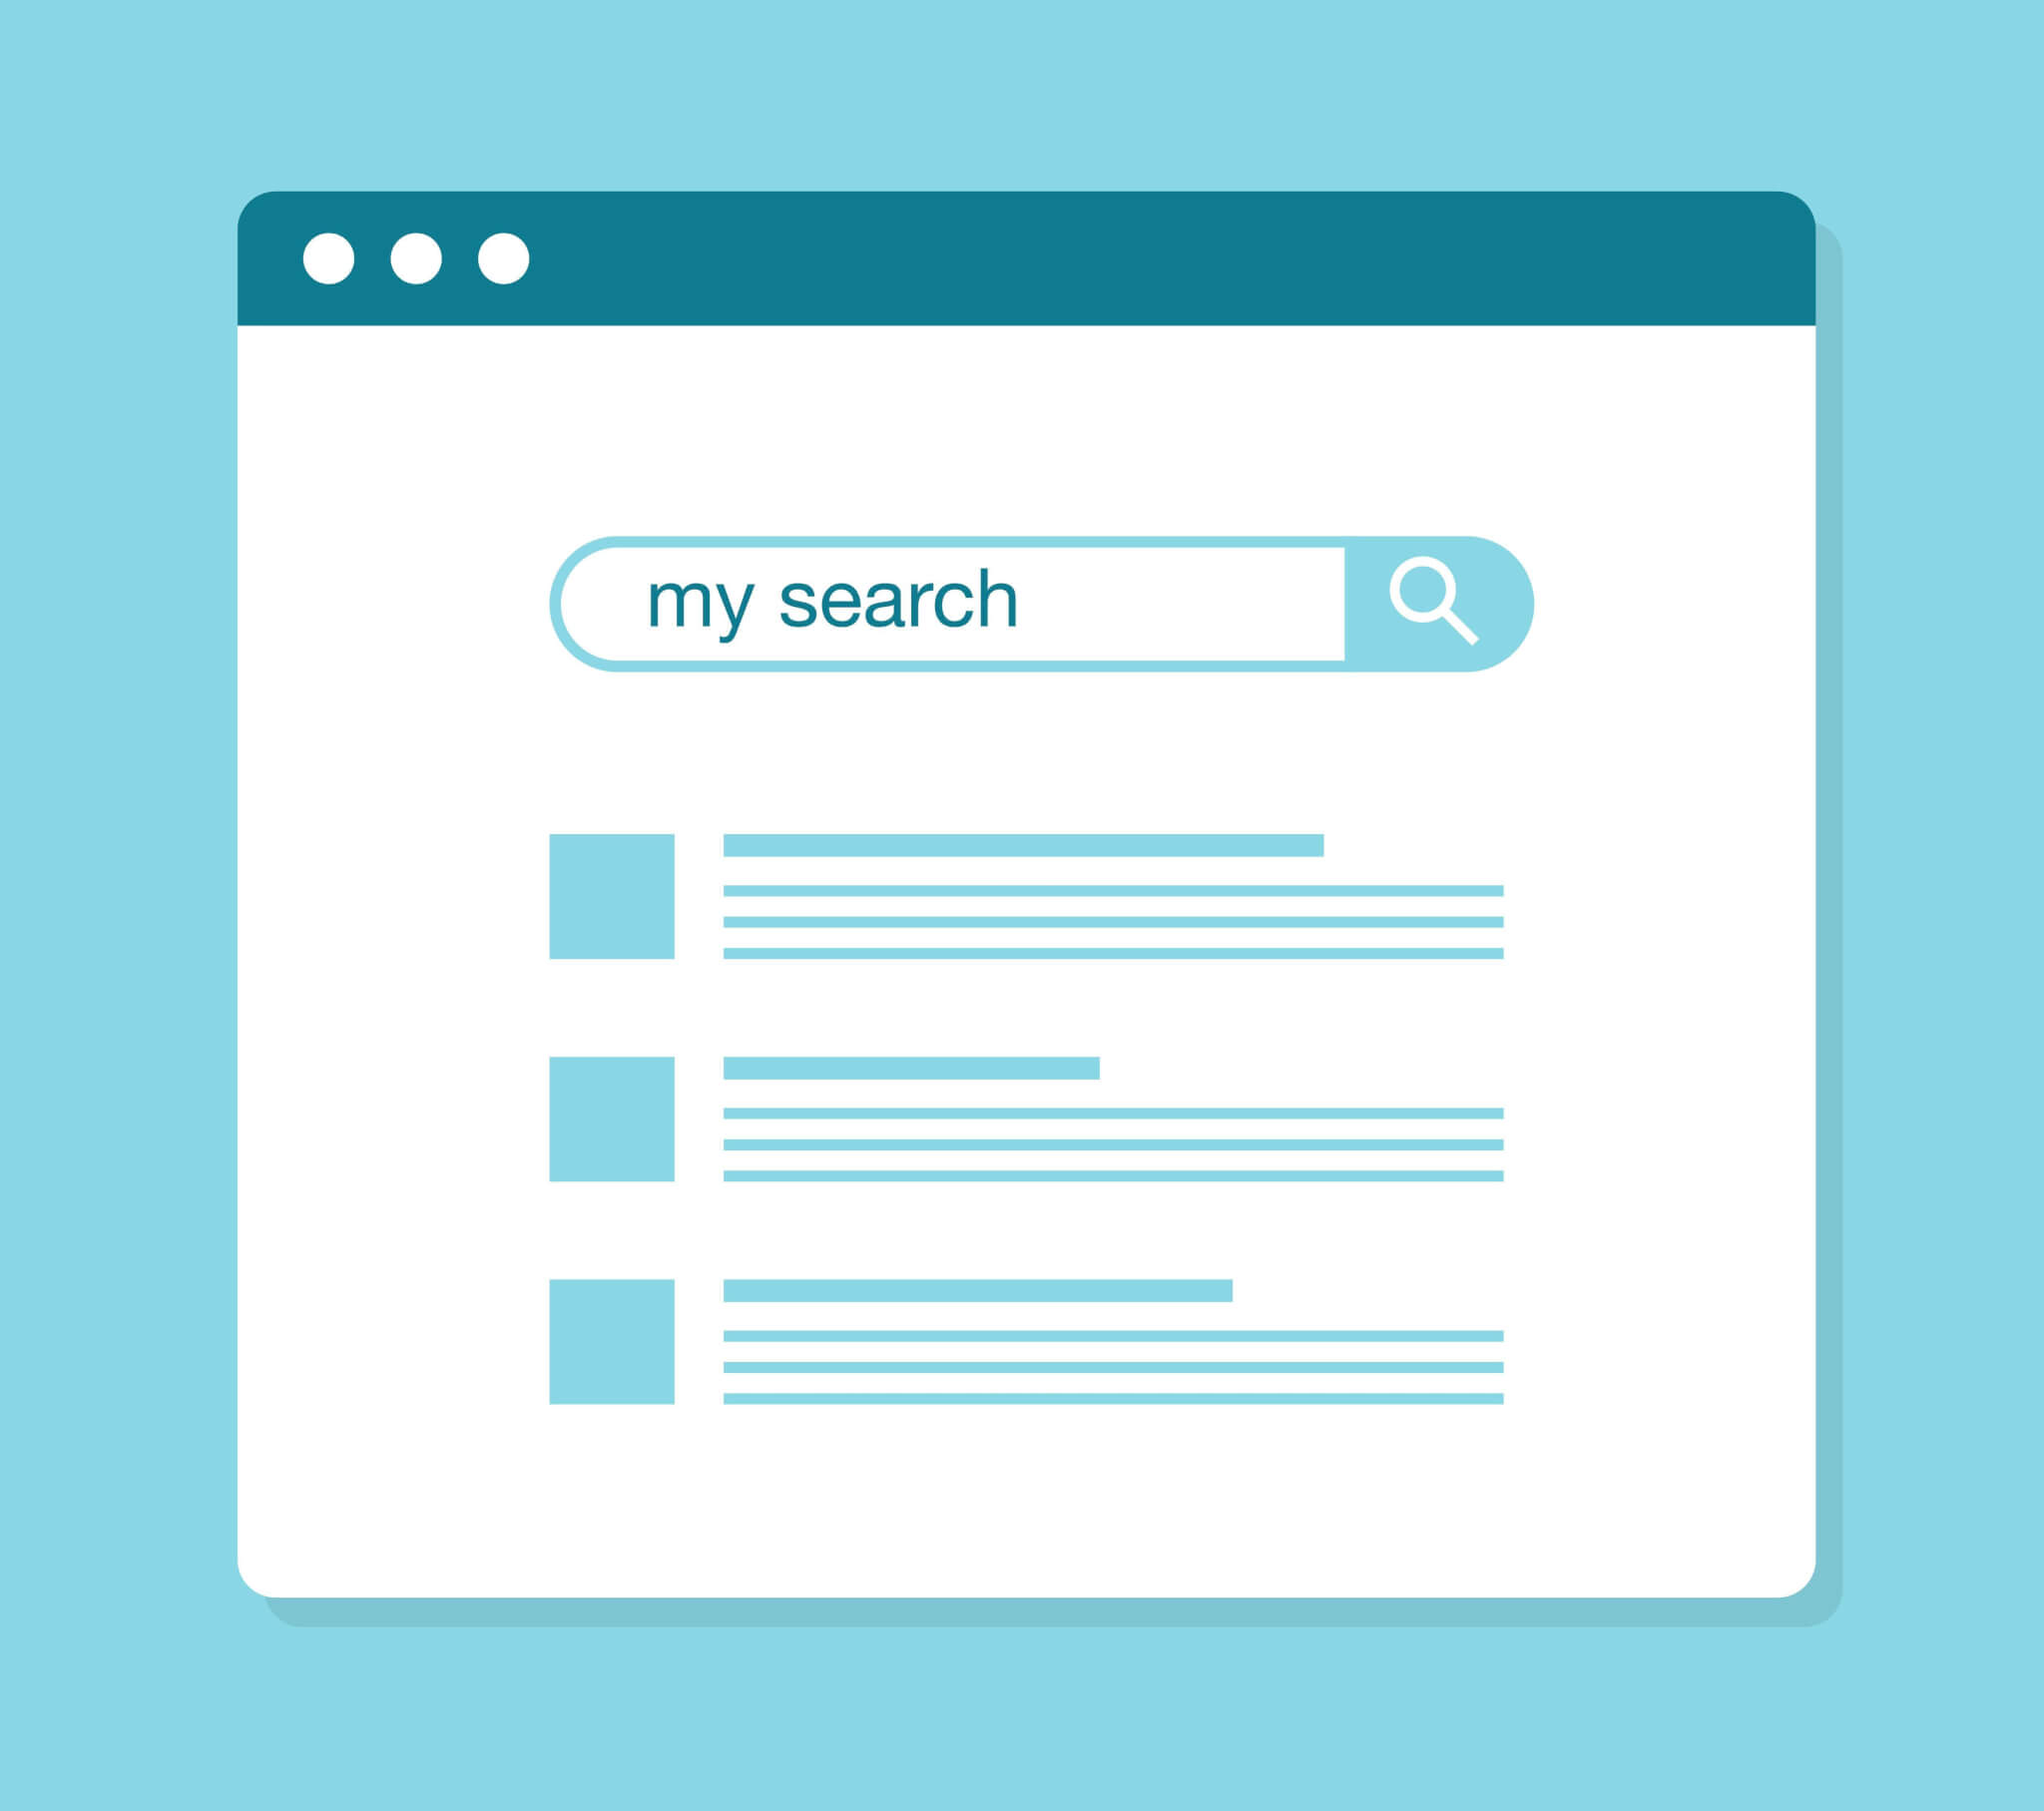 Search engine results in a graphic